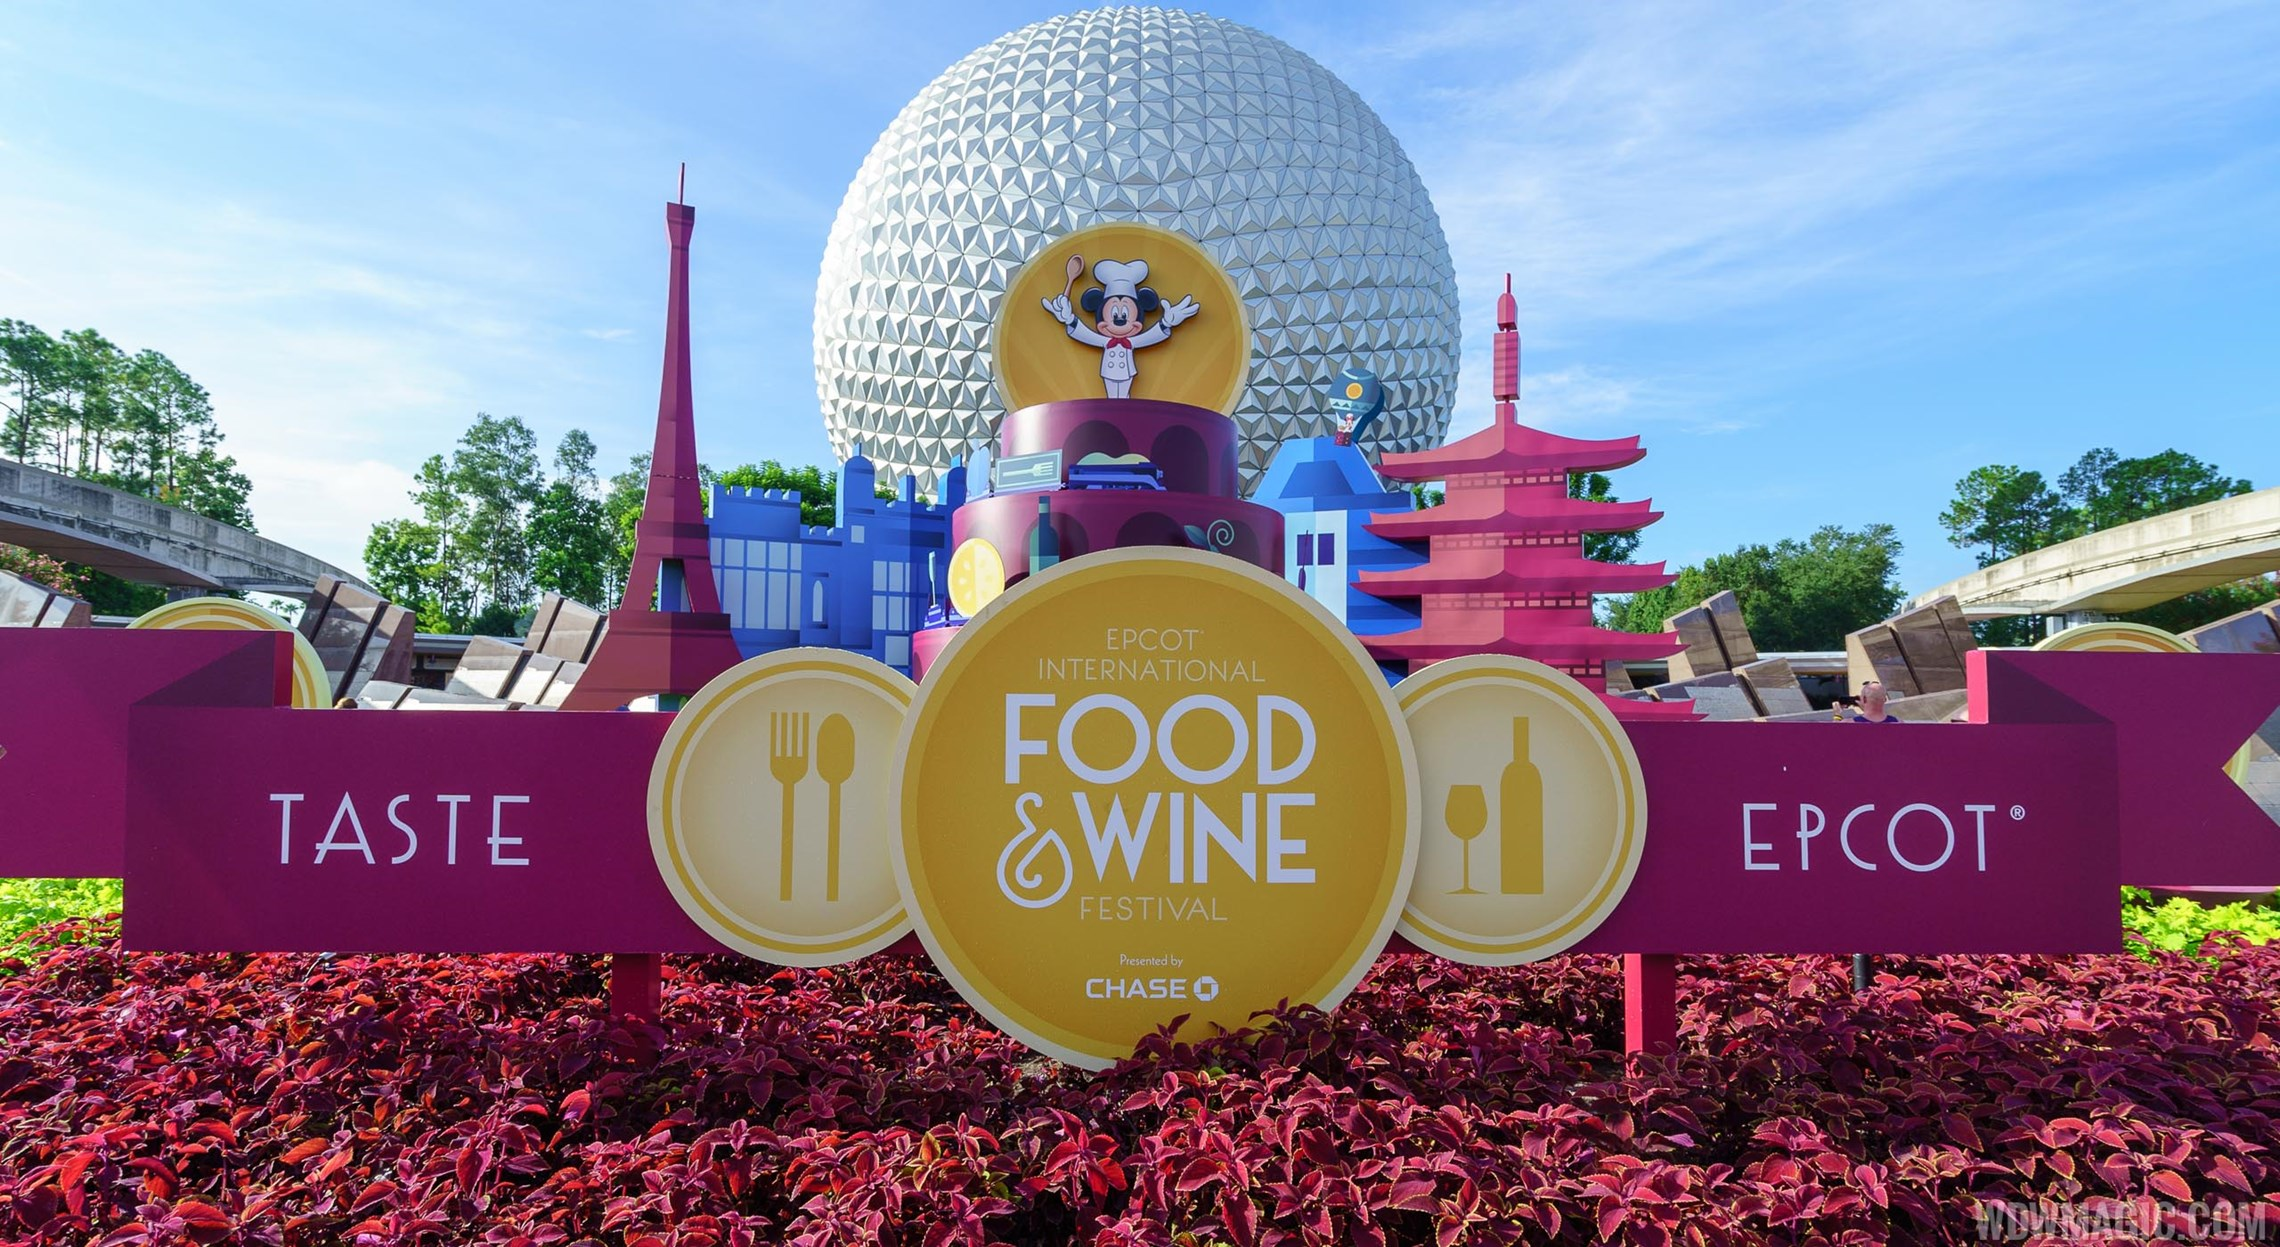 2016 Epcot Food and Wine Festival guide